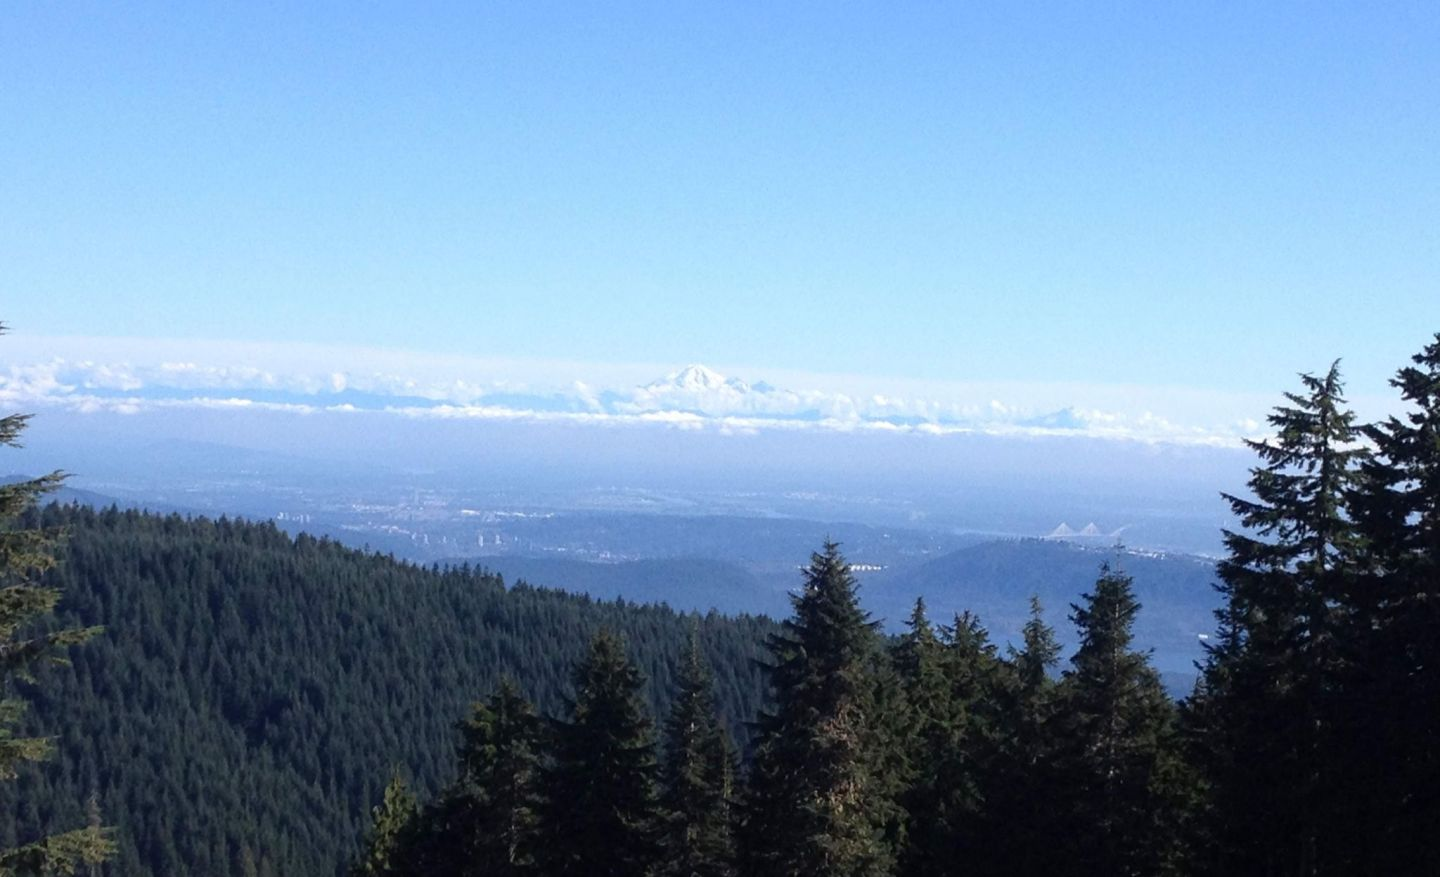 Views over Vancouver from Grouse Mountain